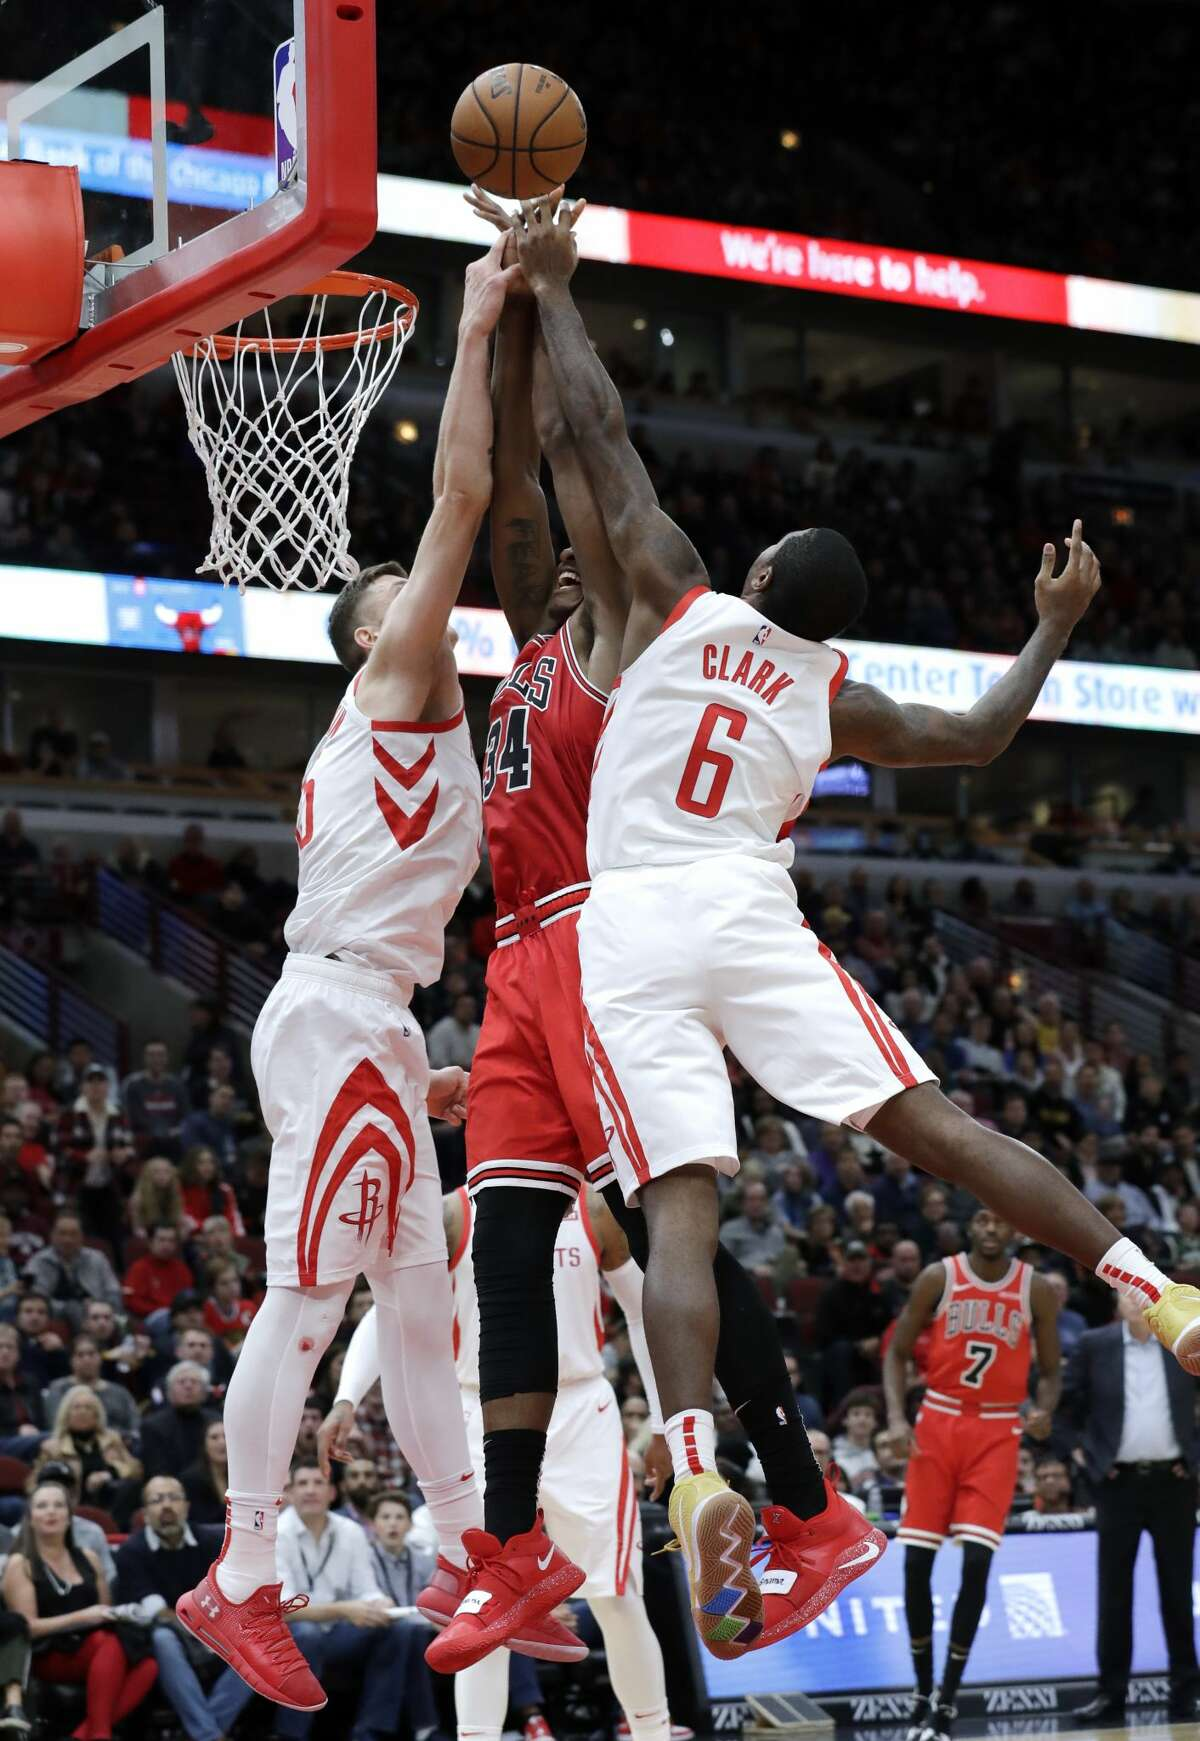 Houston Rockets forward/center Isaiah Hartenstein, left, and forward Gary Clark, right, block a shot by Chicago Bulls center Wendell Carter Jr., center, during the second half of an NBA basketball game Saturday, Nov. 3, 2018, in Chicago. (AP Photo/Nam Y. Huh)